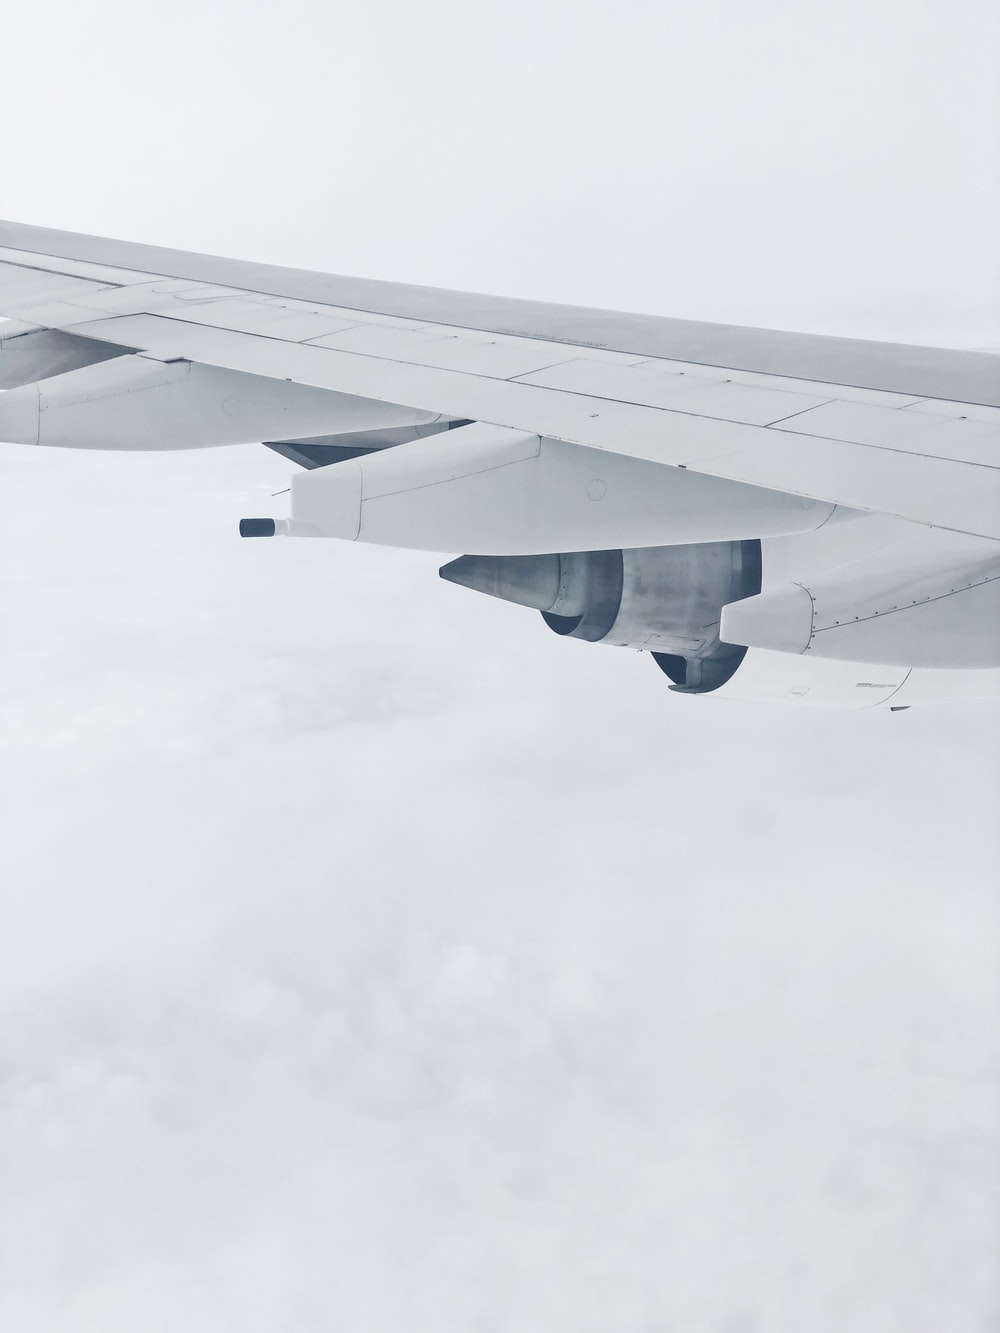 shallow focus photo of gray airplane wings